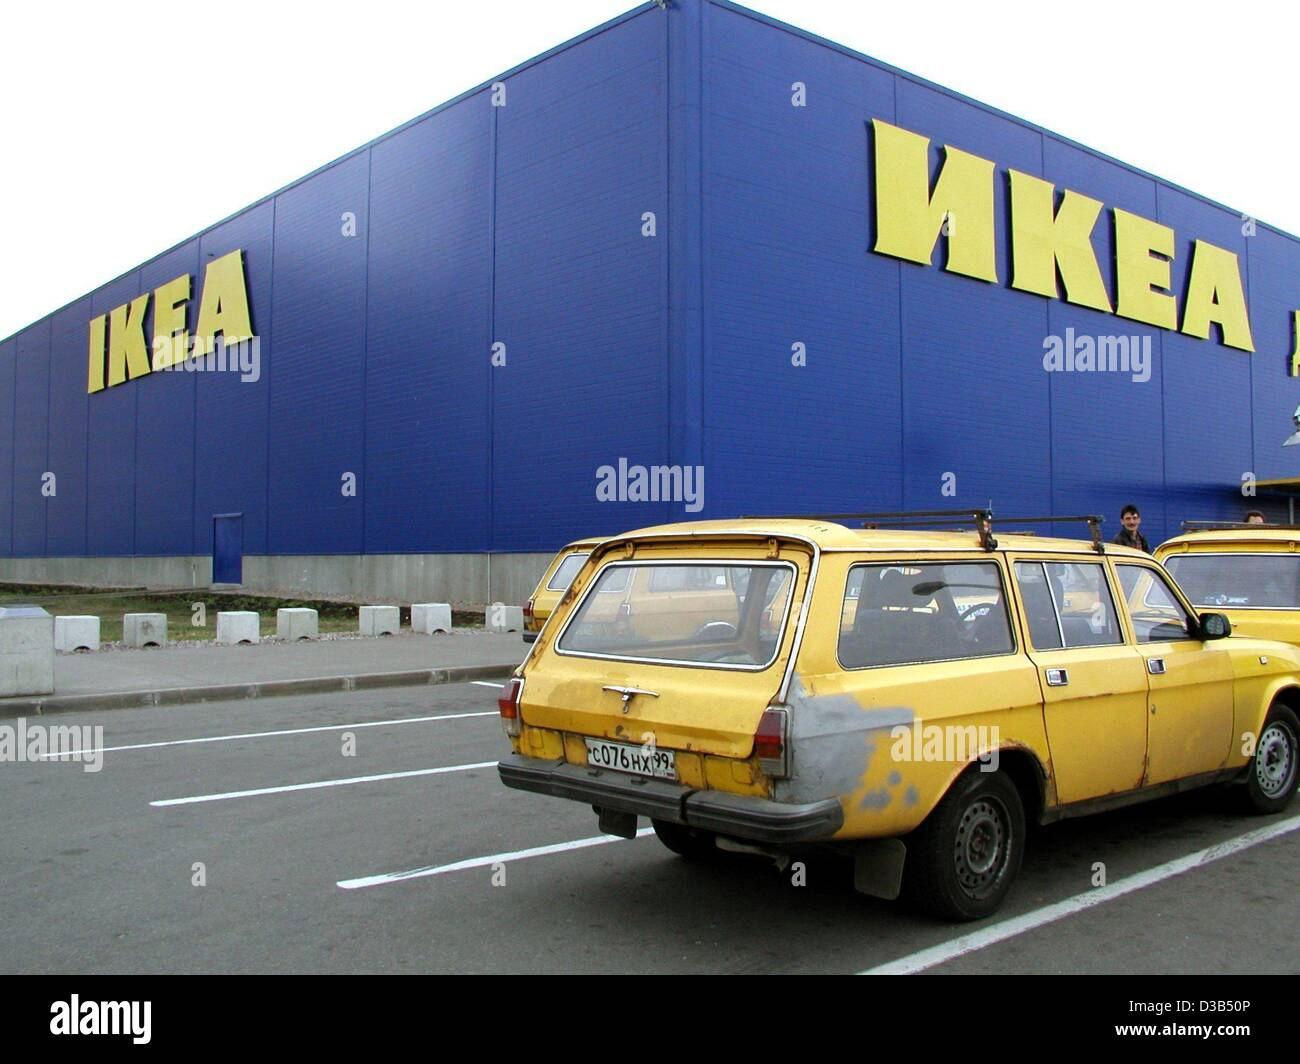 Ikea Front Dpa) - A Car Parks In Front Of The Swedish Home Furnisher Ikea In Stock Photo - Alamy